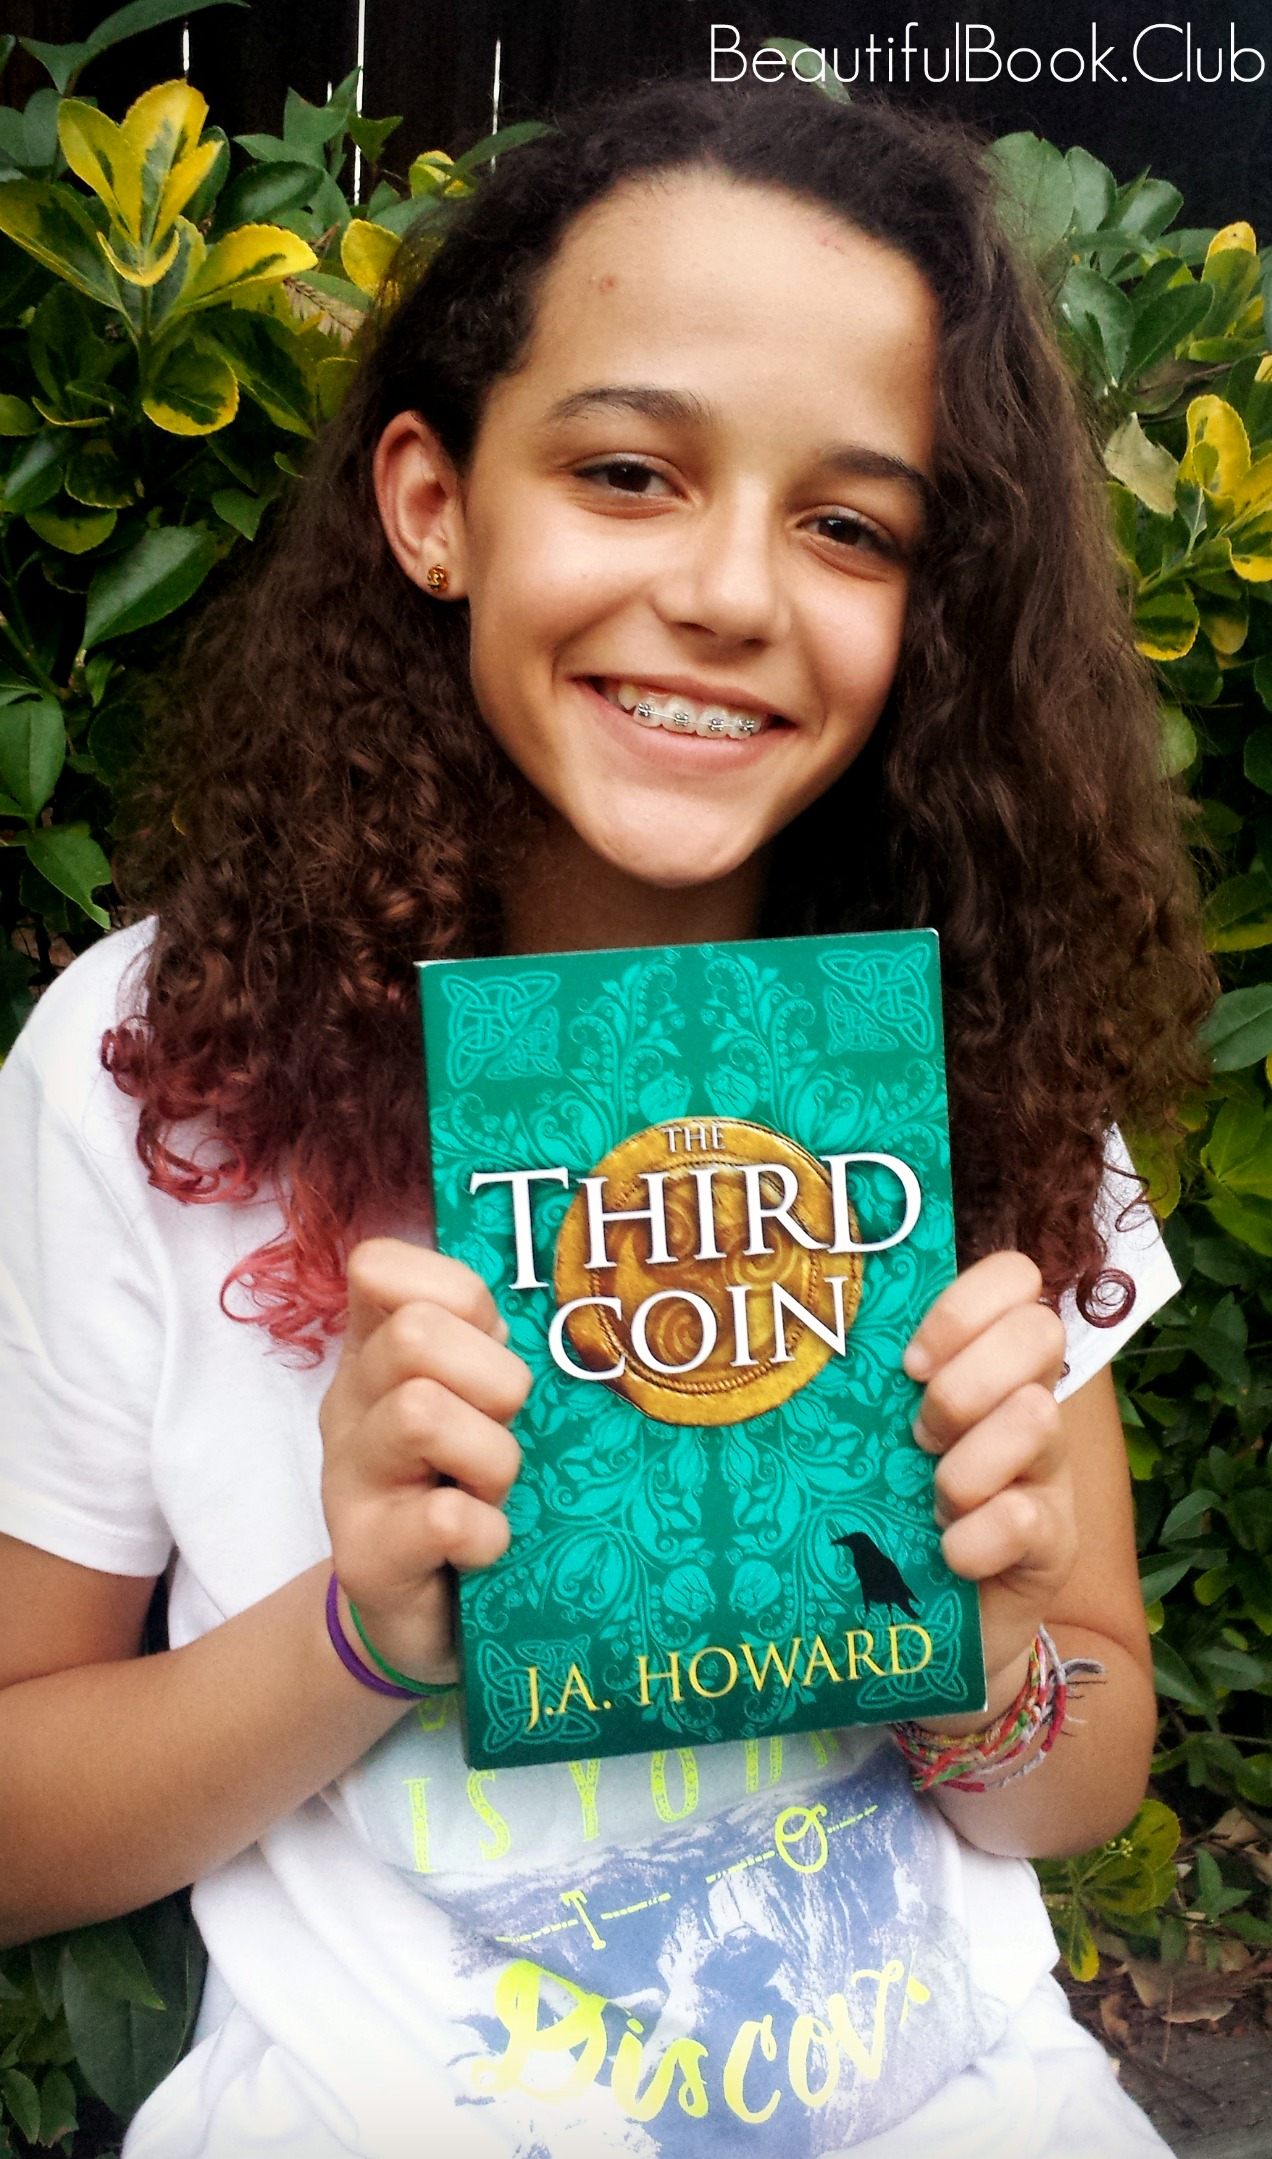 The Third Coin by J.A. Howard with me